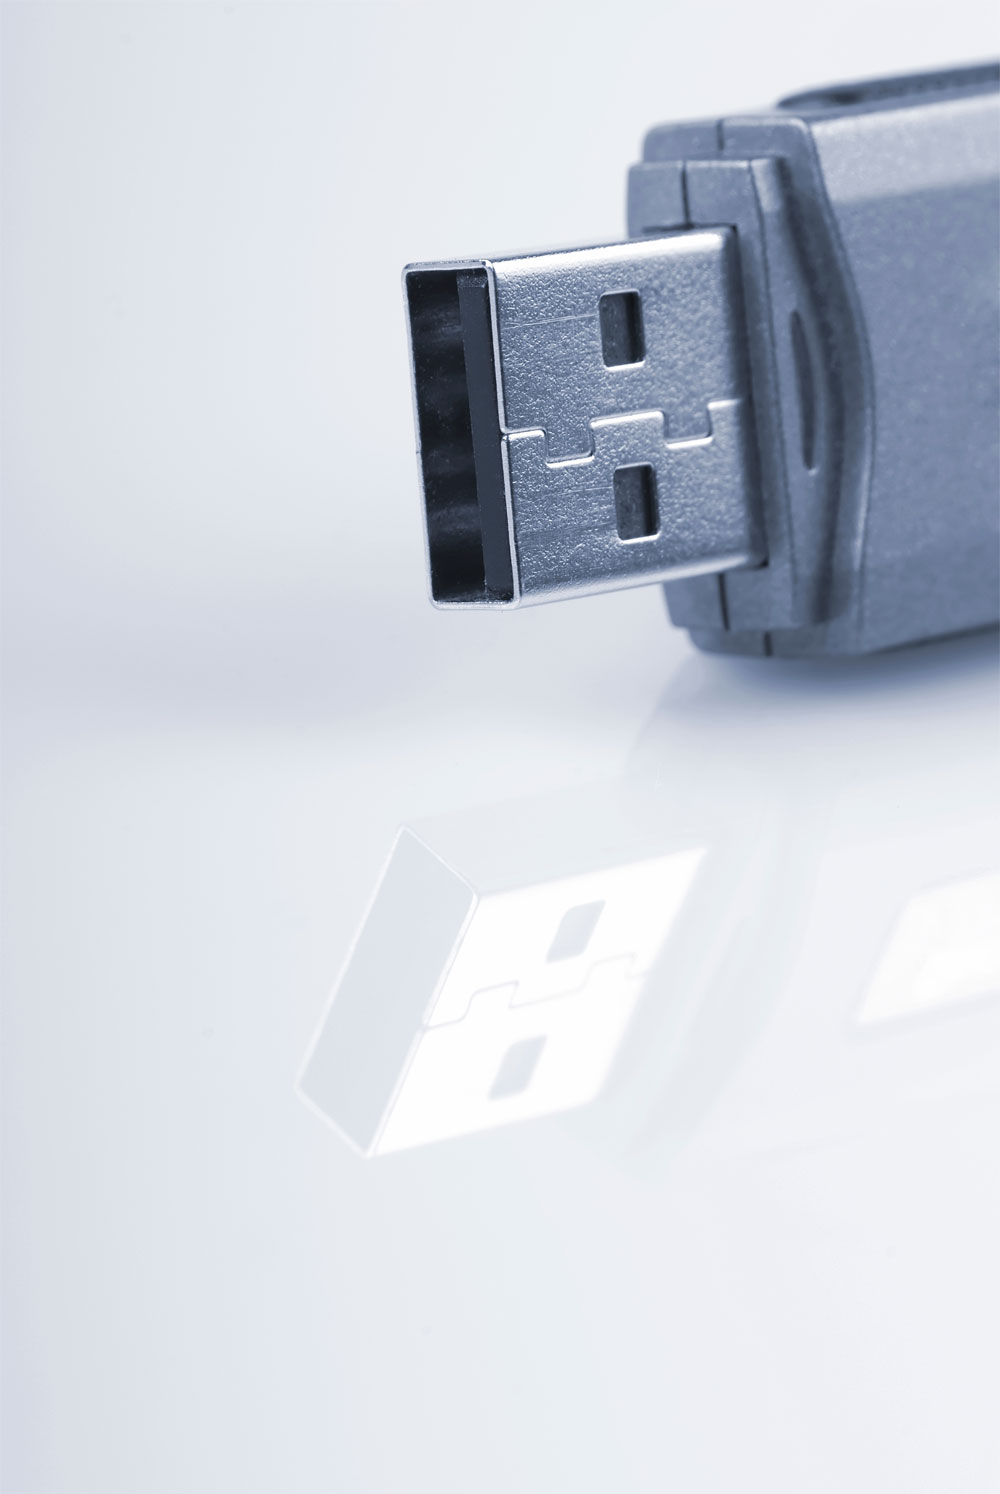 Superspeed USB klar